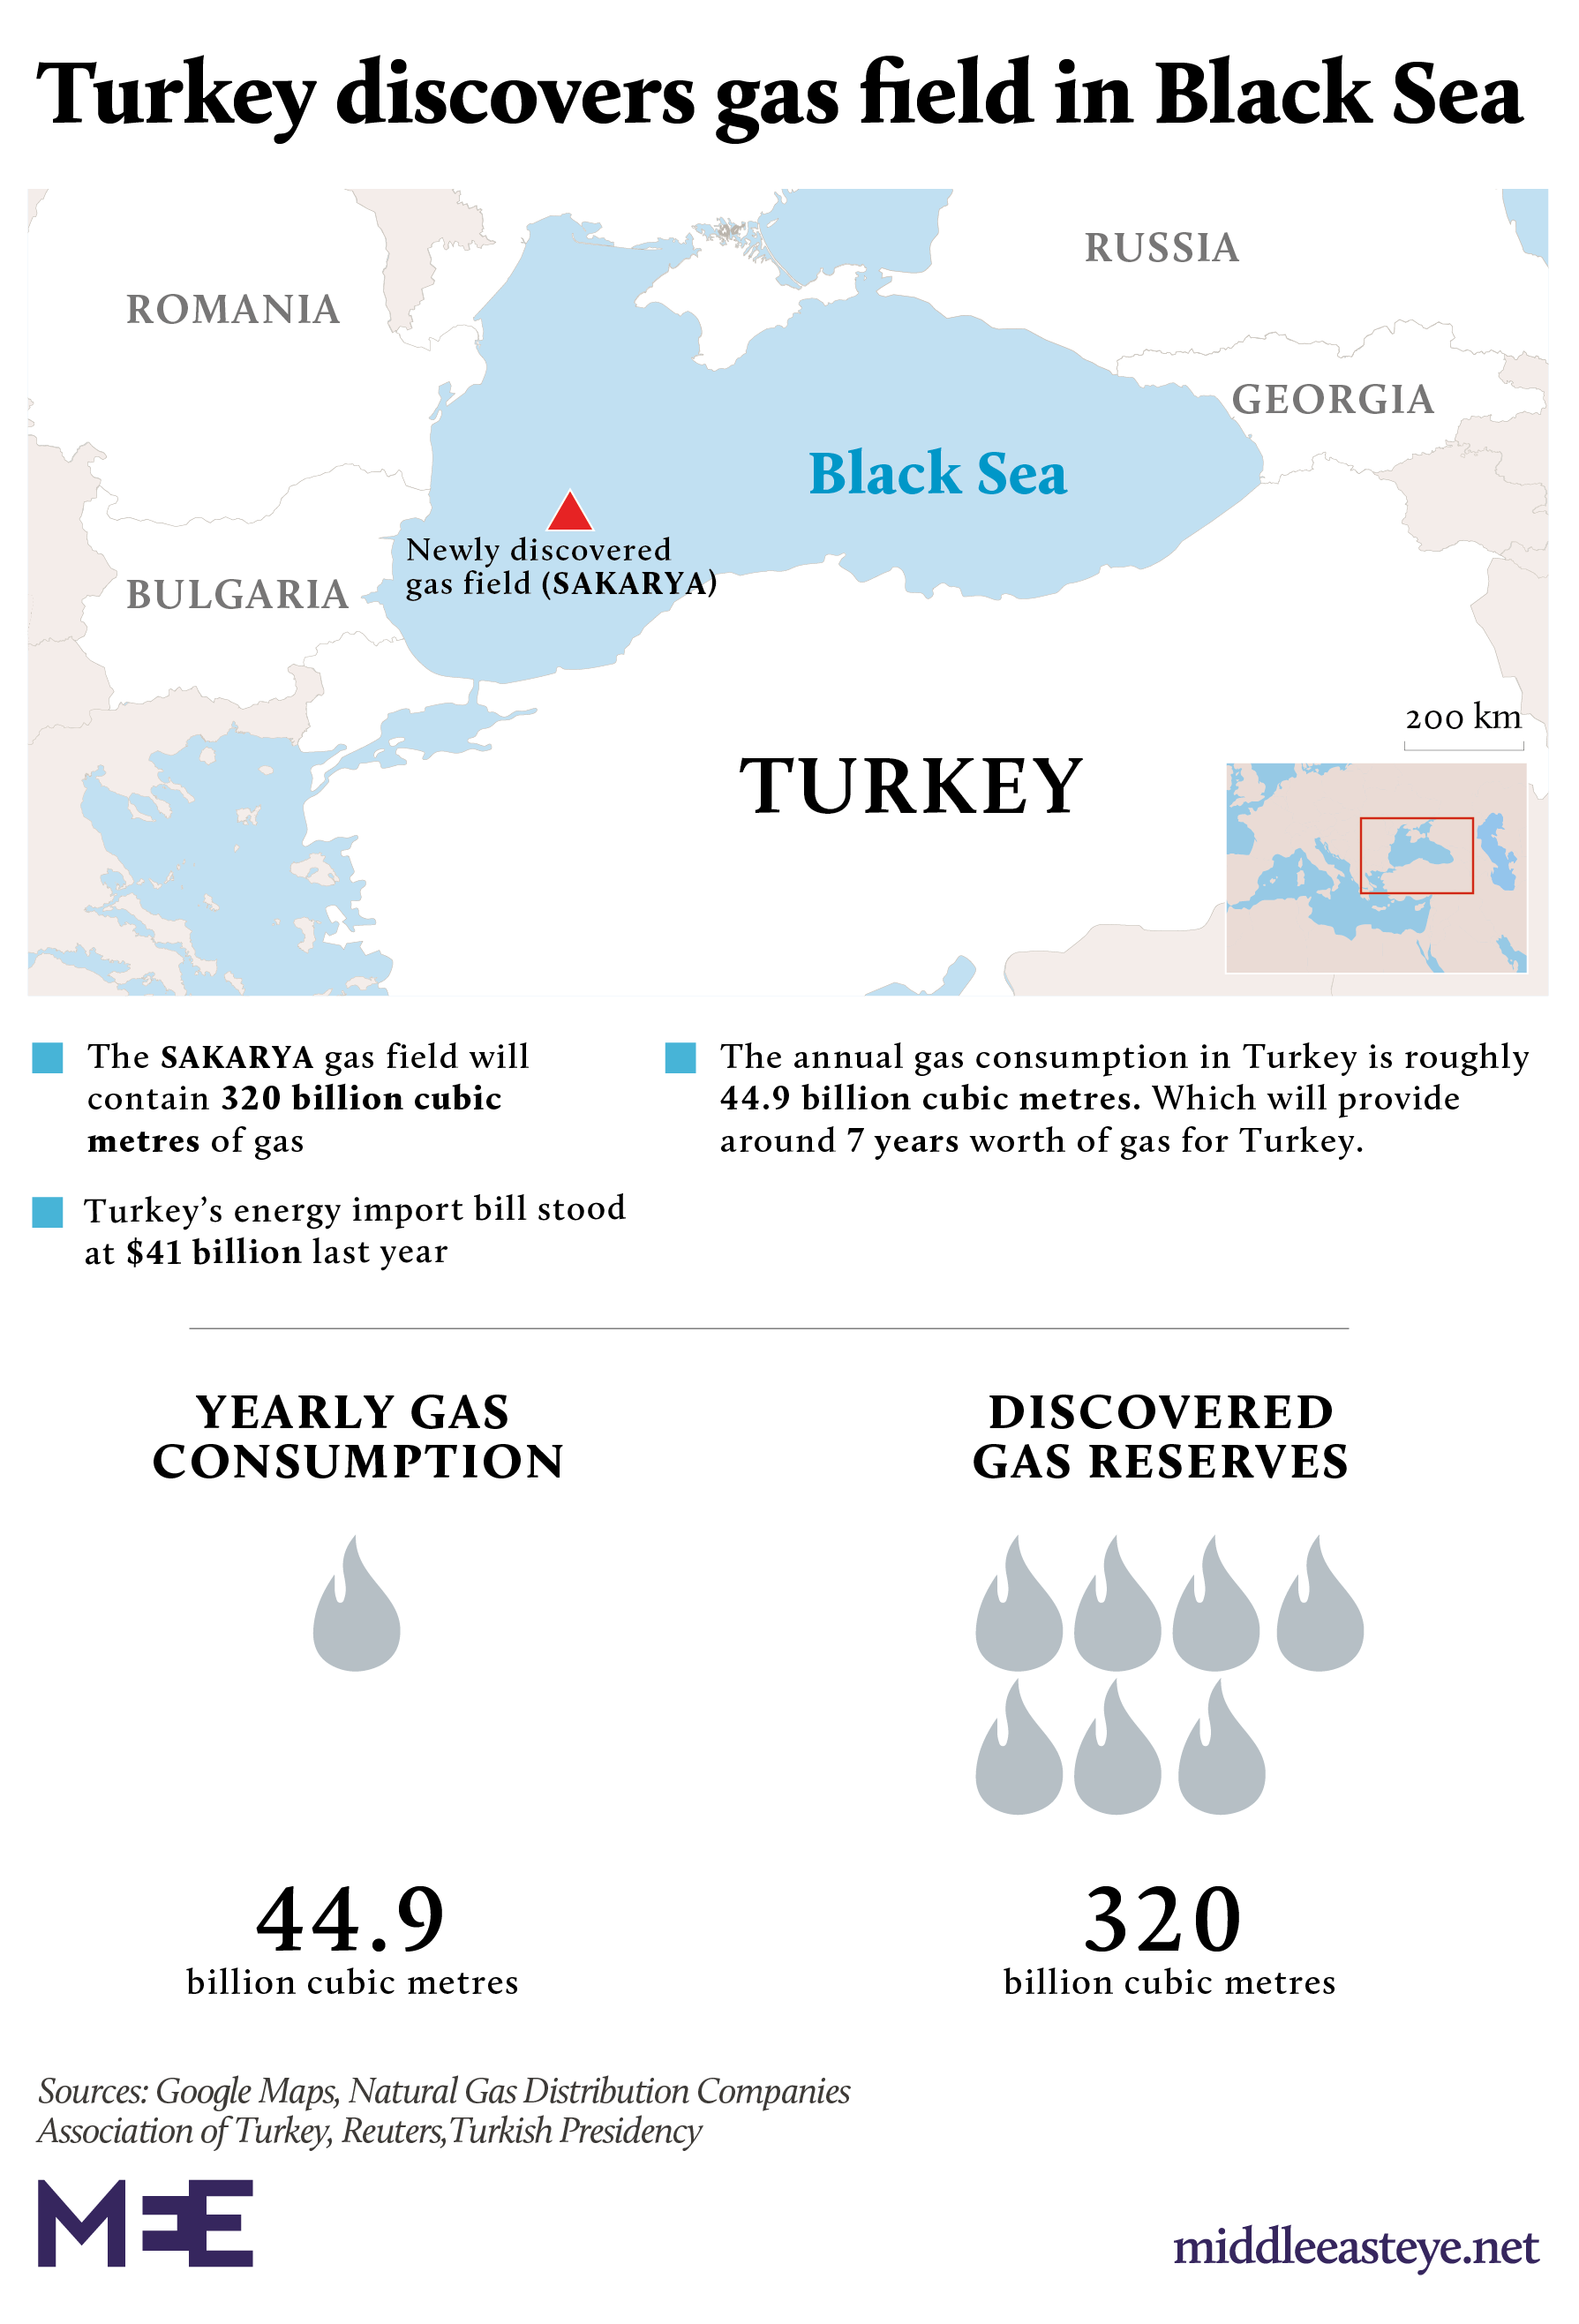 Turkey announced natural gas discovery in Black Sea, the largest in its history